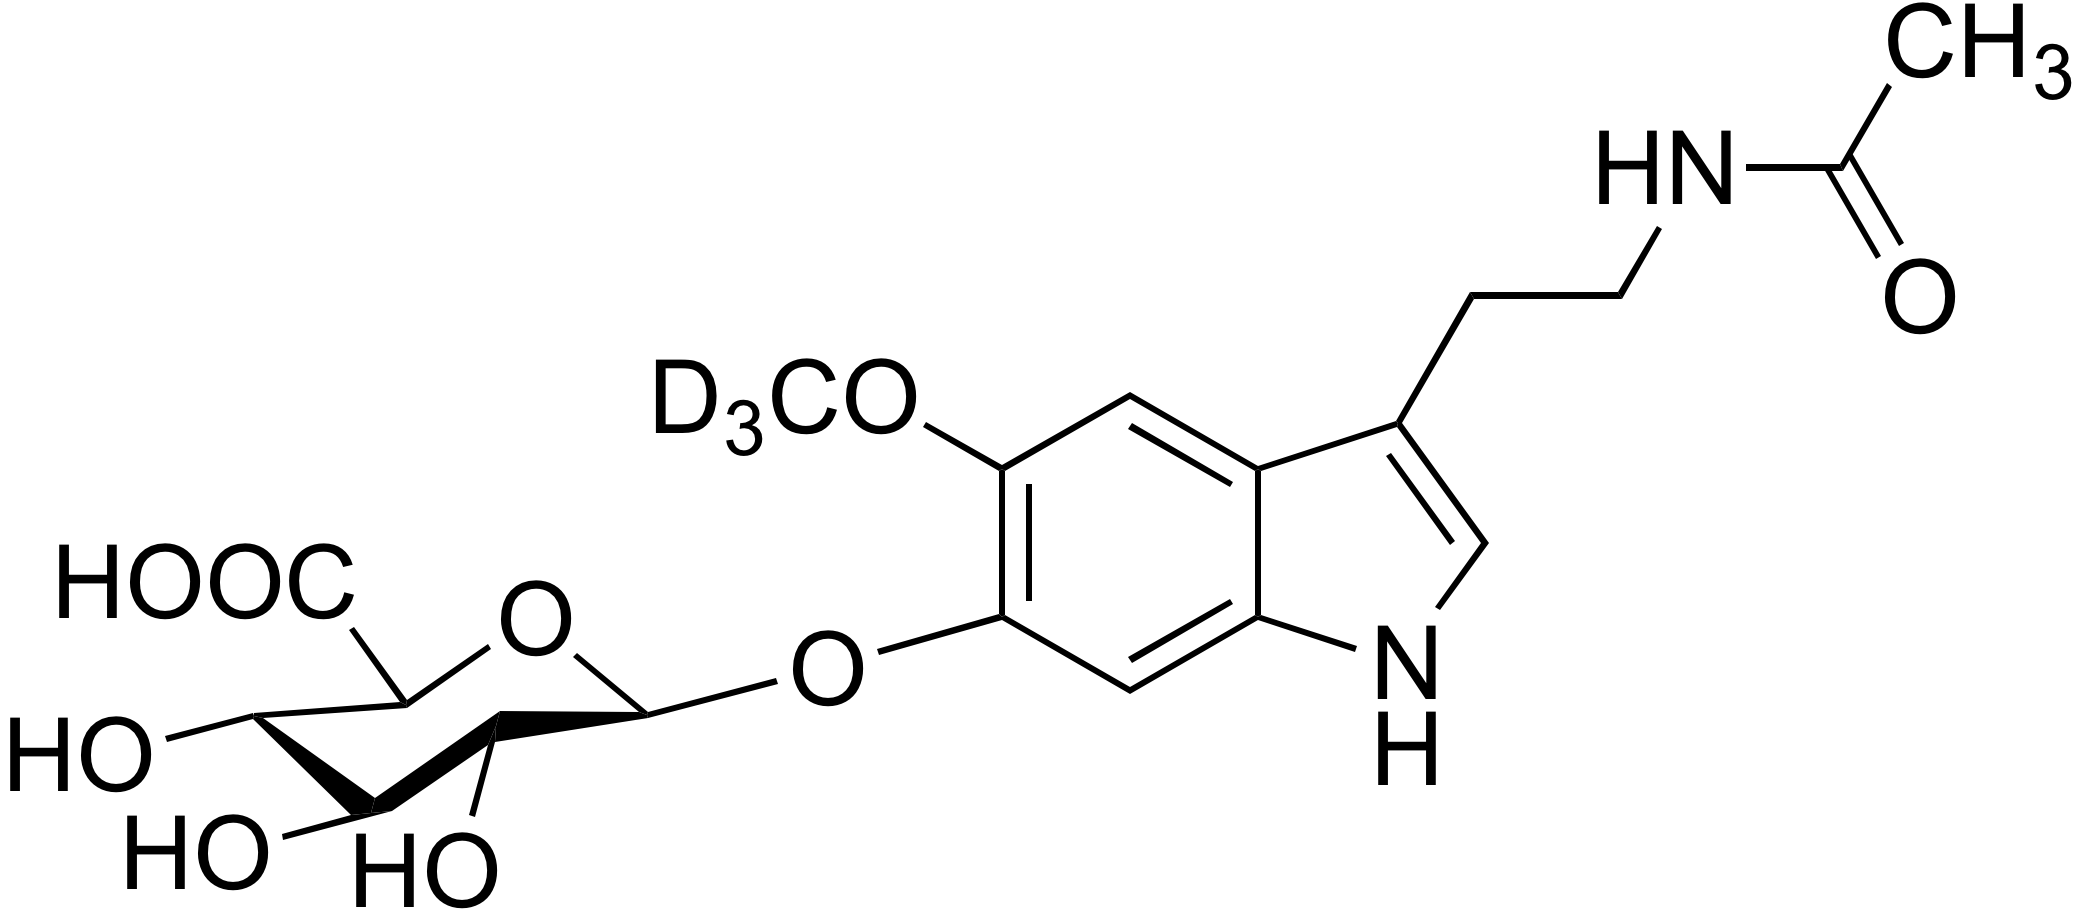 6-Hydroxymelatonin β-D-glucuronide-d<sub>3</sub>